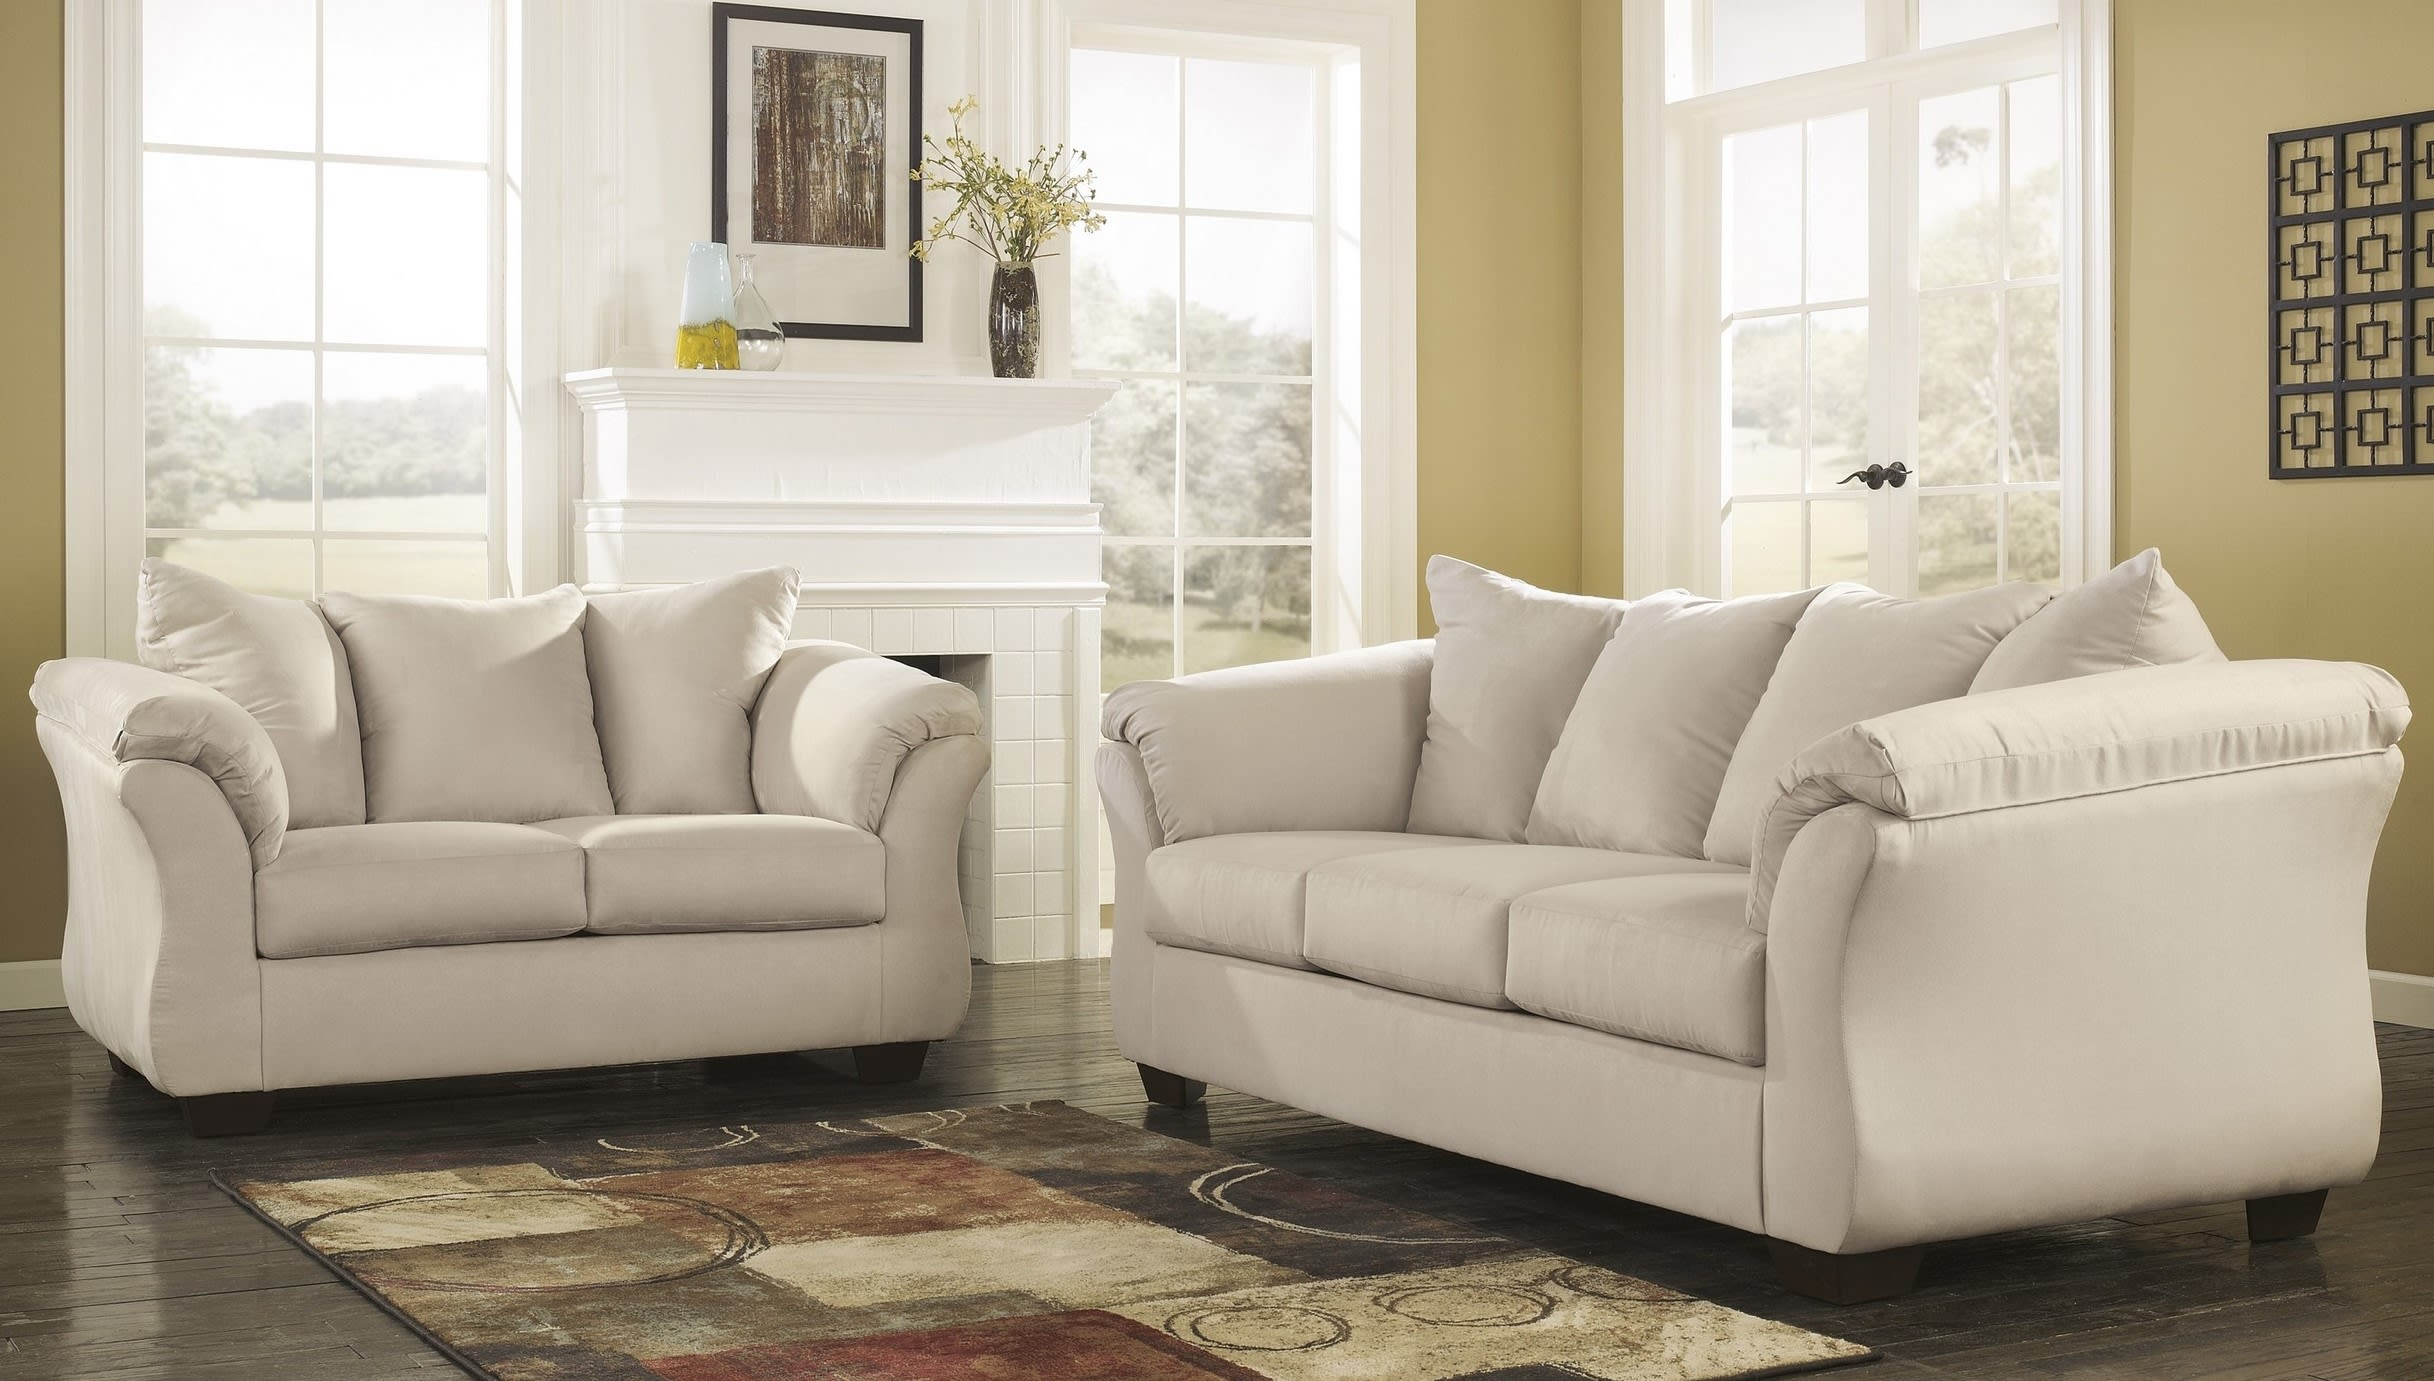 Signature design by ashley darcy stone 2 piece living room - 8 piece living room furniture set ...